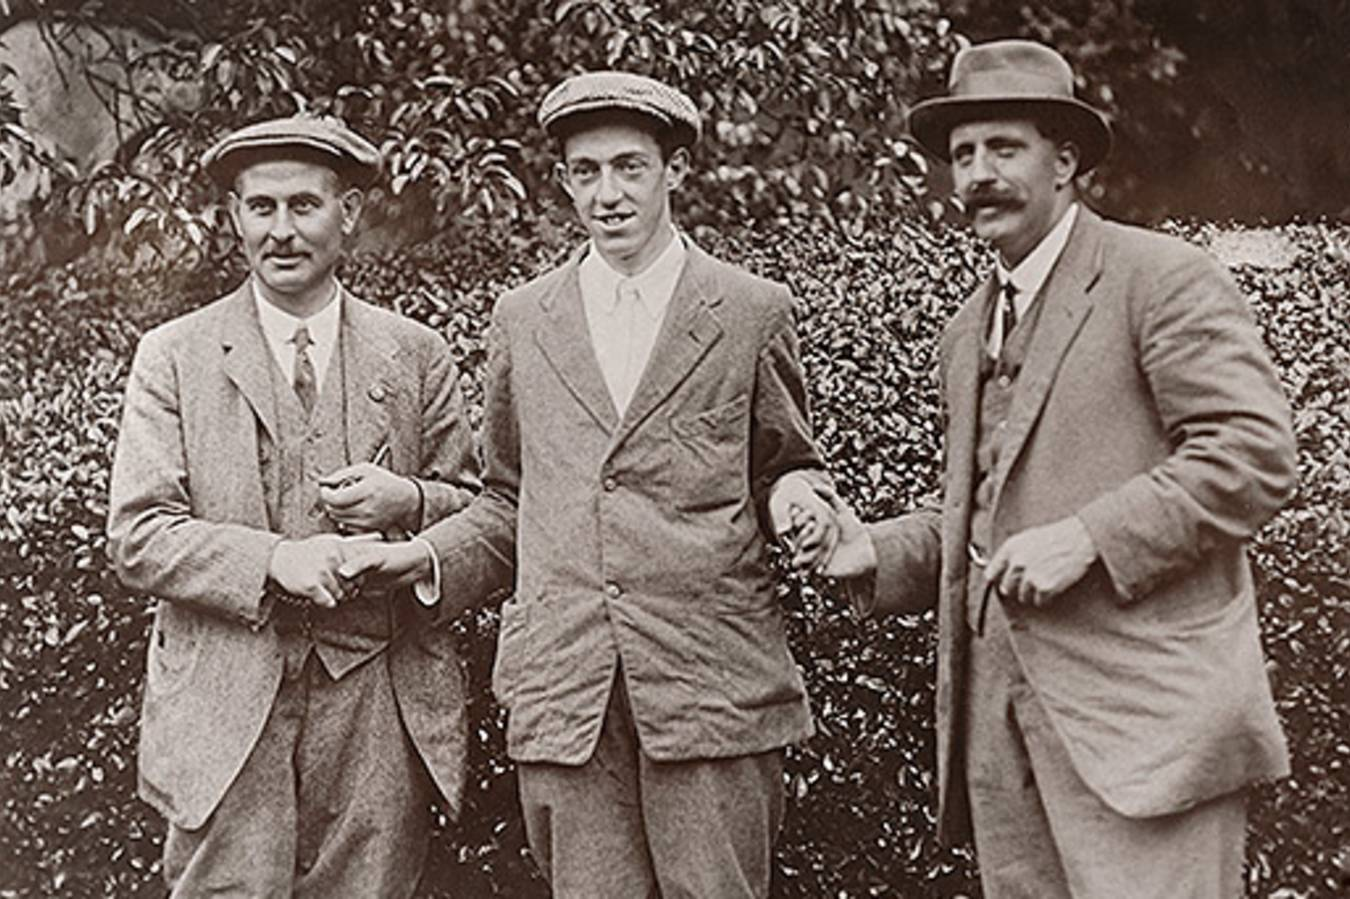 Francis Ouimet, America's First Golf Hero: Part I